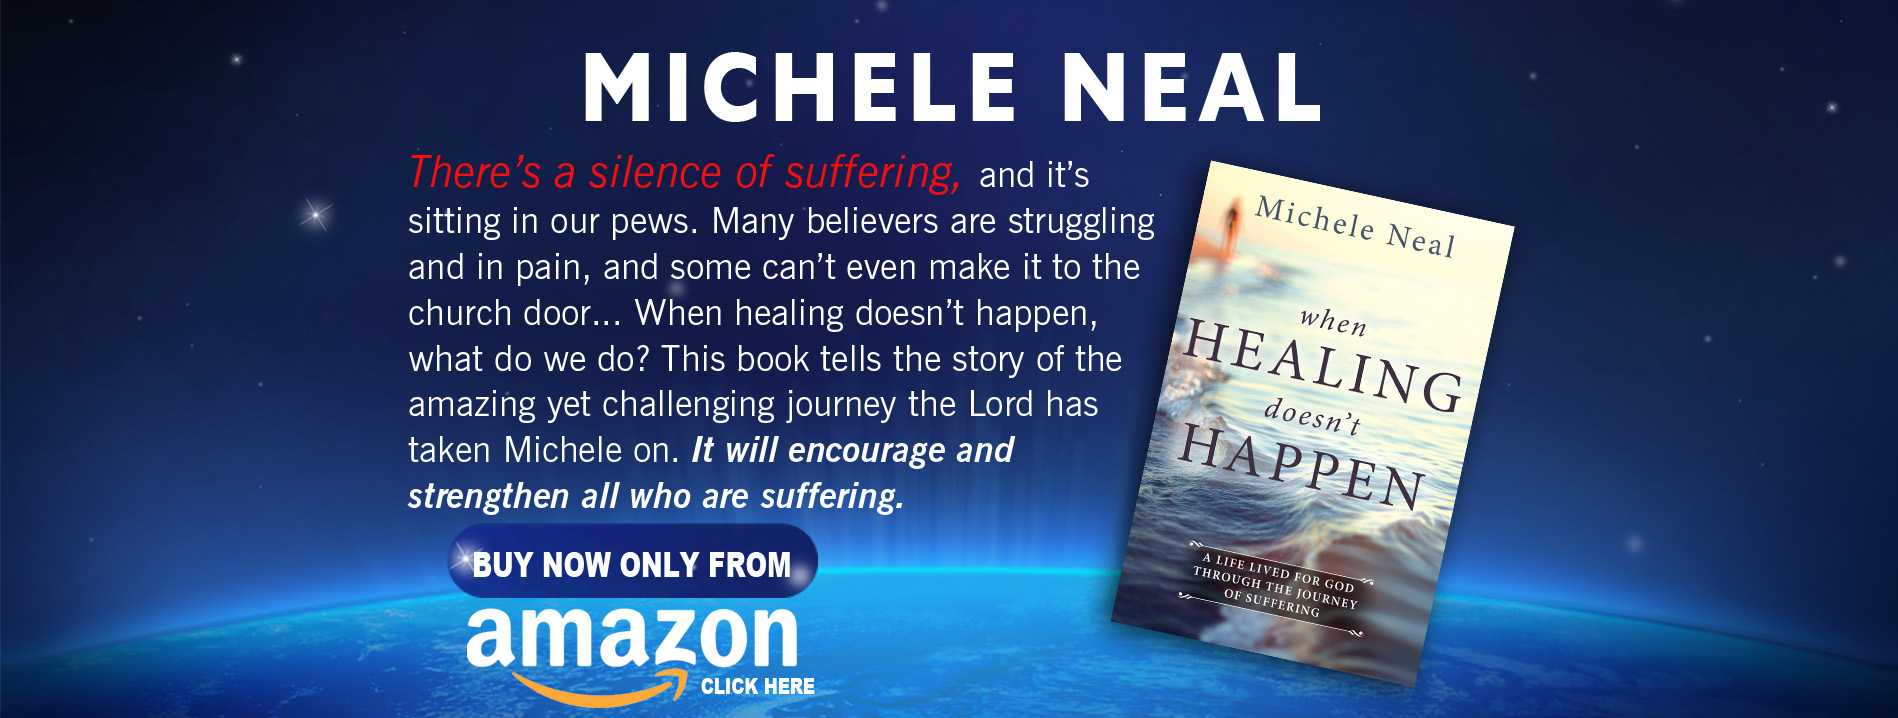 When Healing Doesn't Happen: A Life Lived for God Through the Journey of Suffering